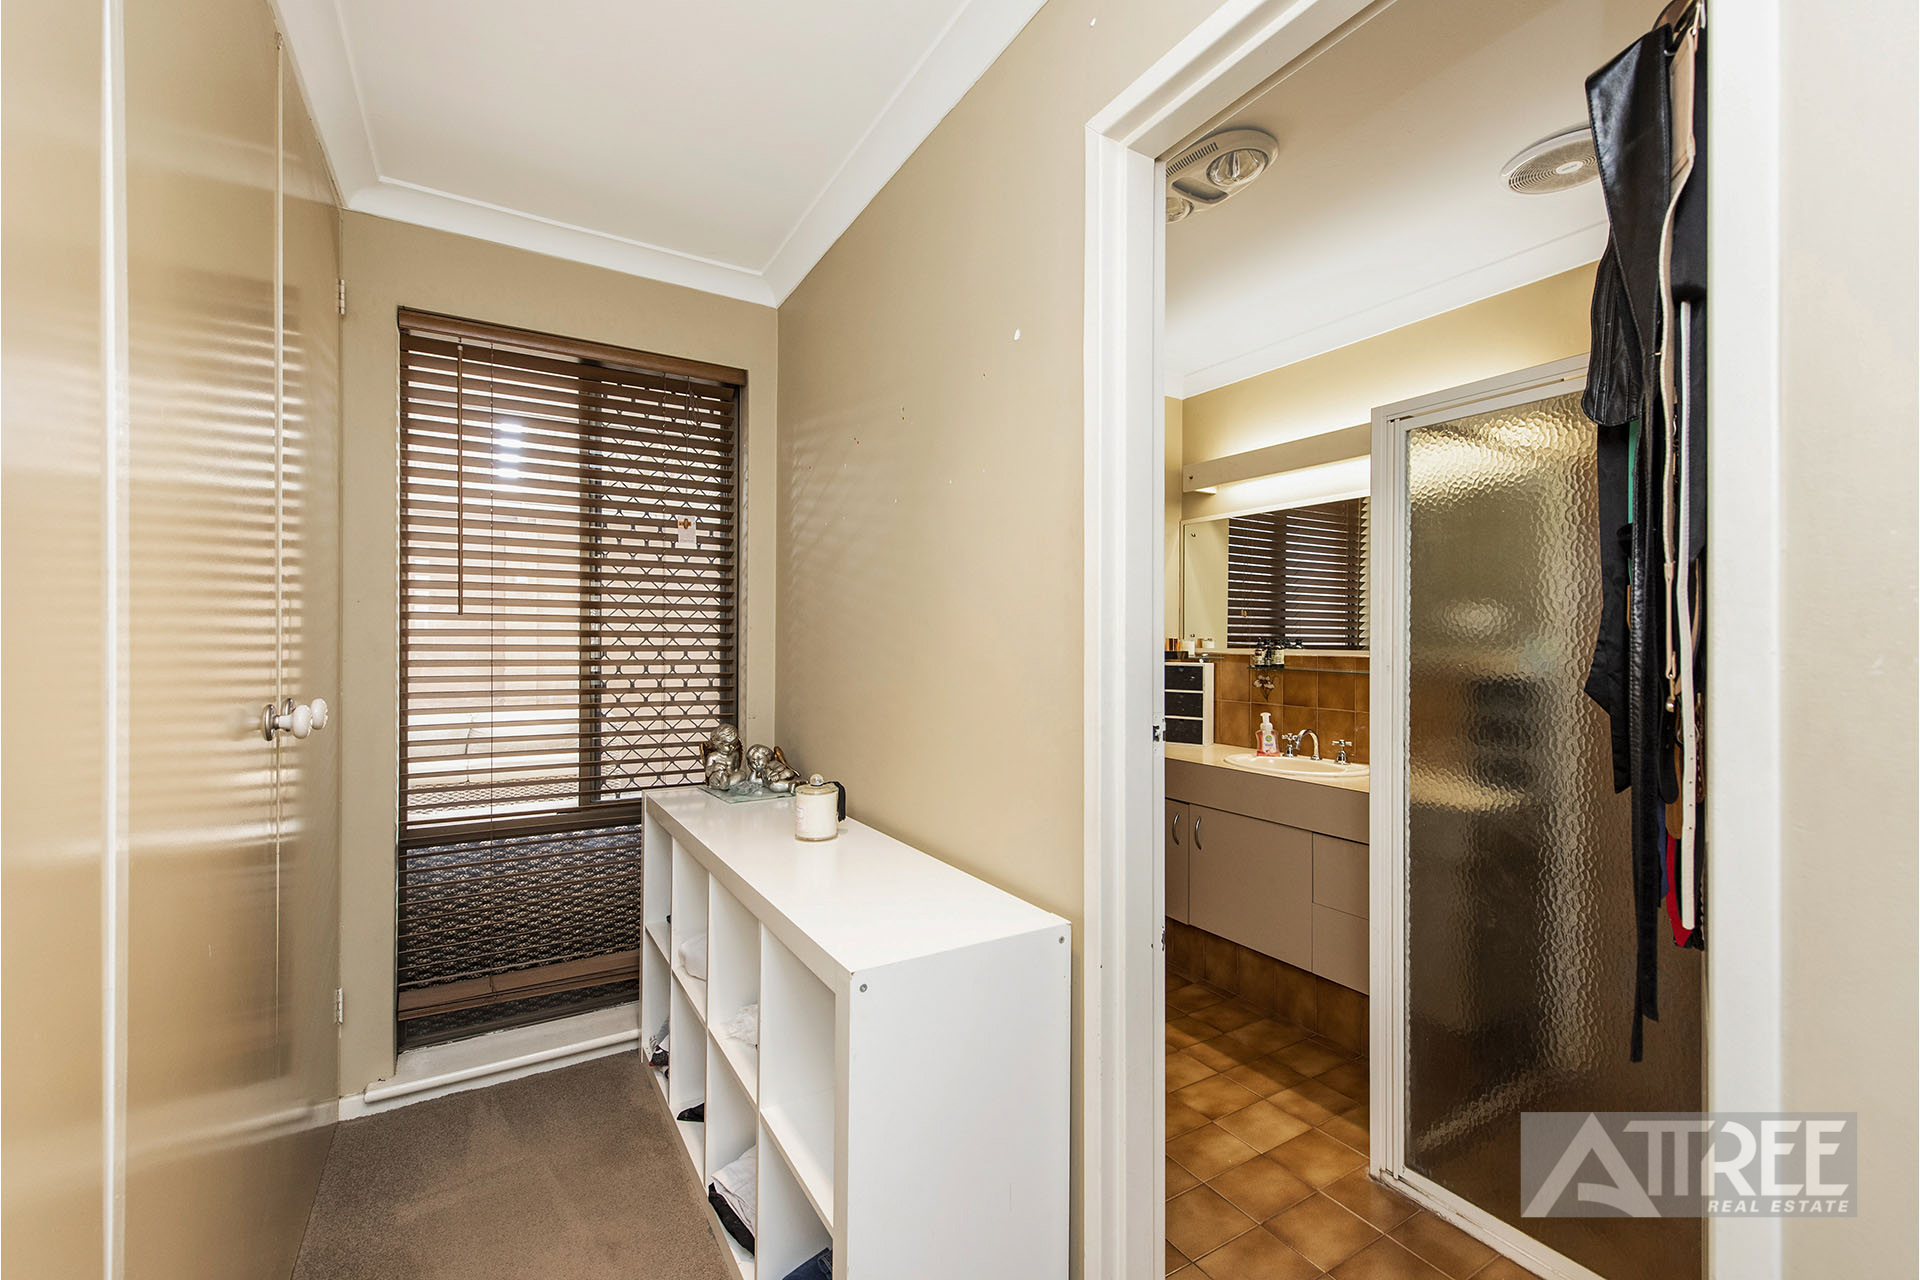 Property for sale in THORNLIE, 11 Merino Court : Attree Real Estate